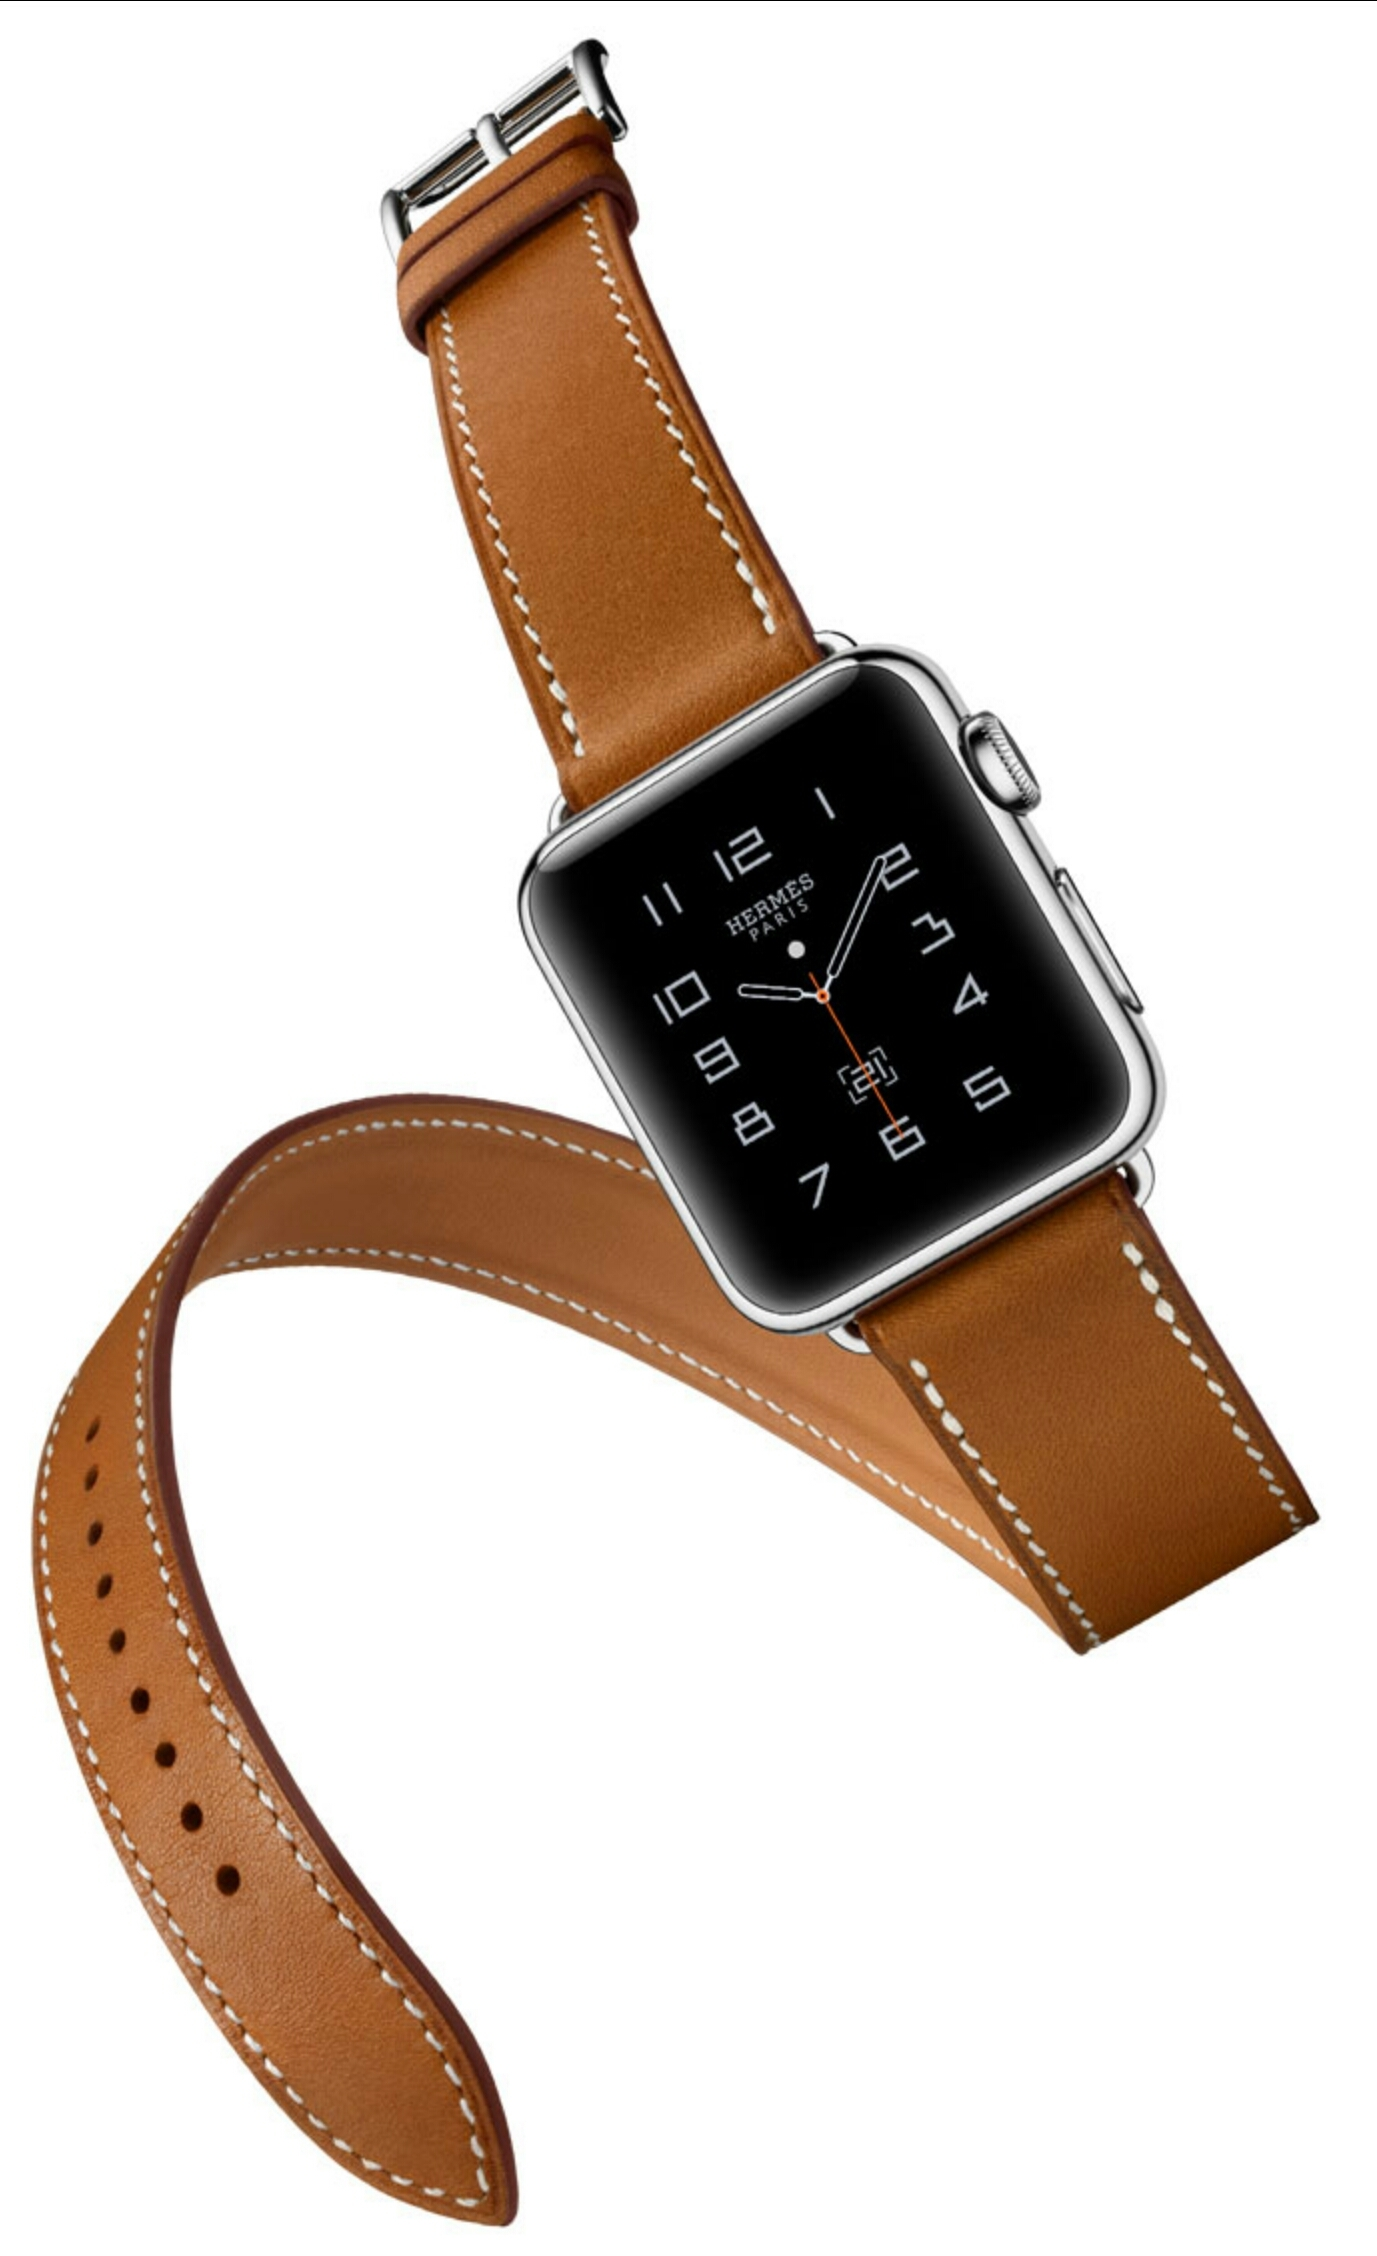 Apple Watch Will Arrive in April